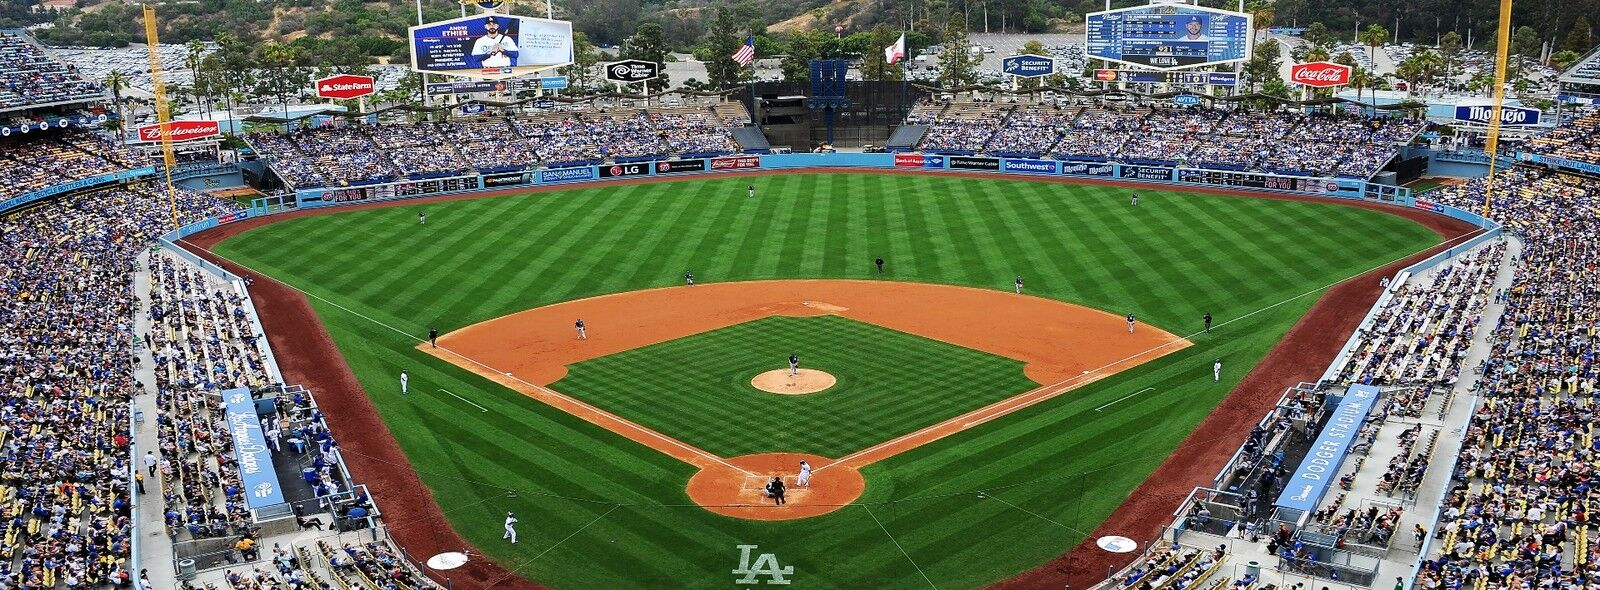 San Diego Padres at Los Angeles Dodgers Tickets (Opening Day - Magnetic Schedule)